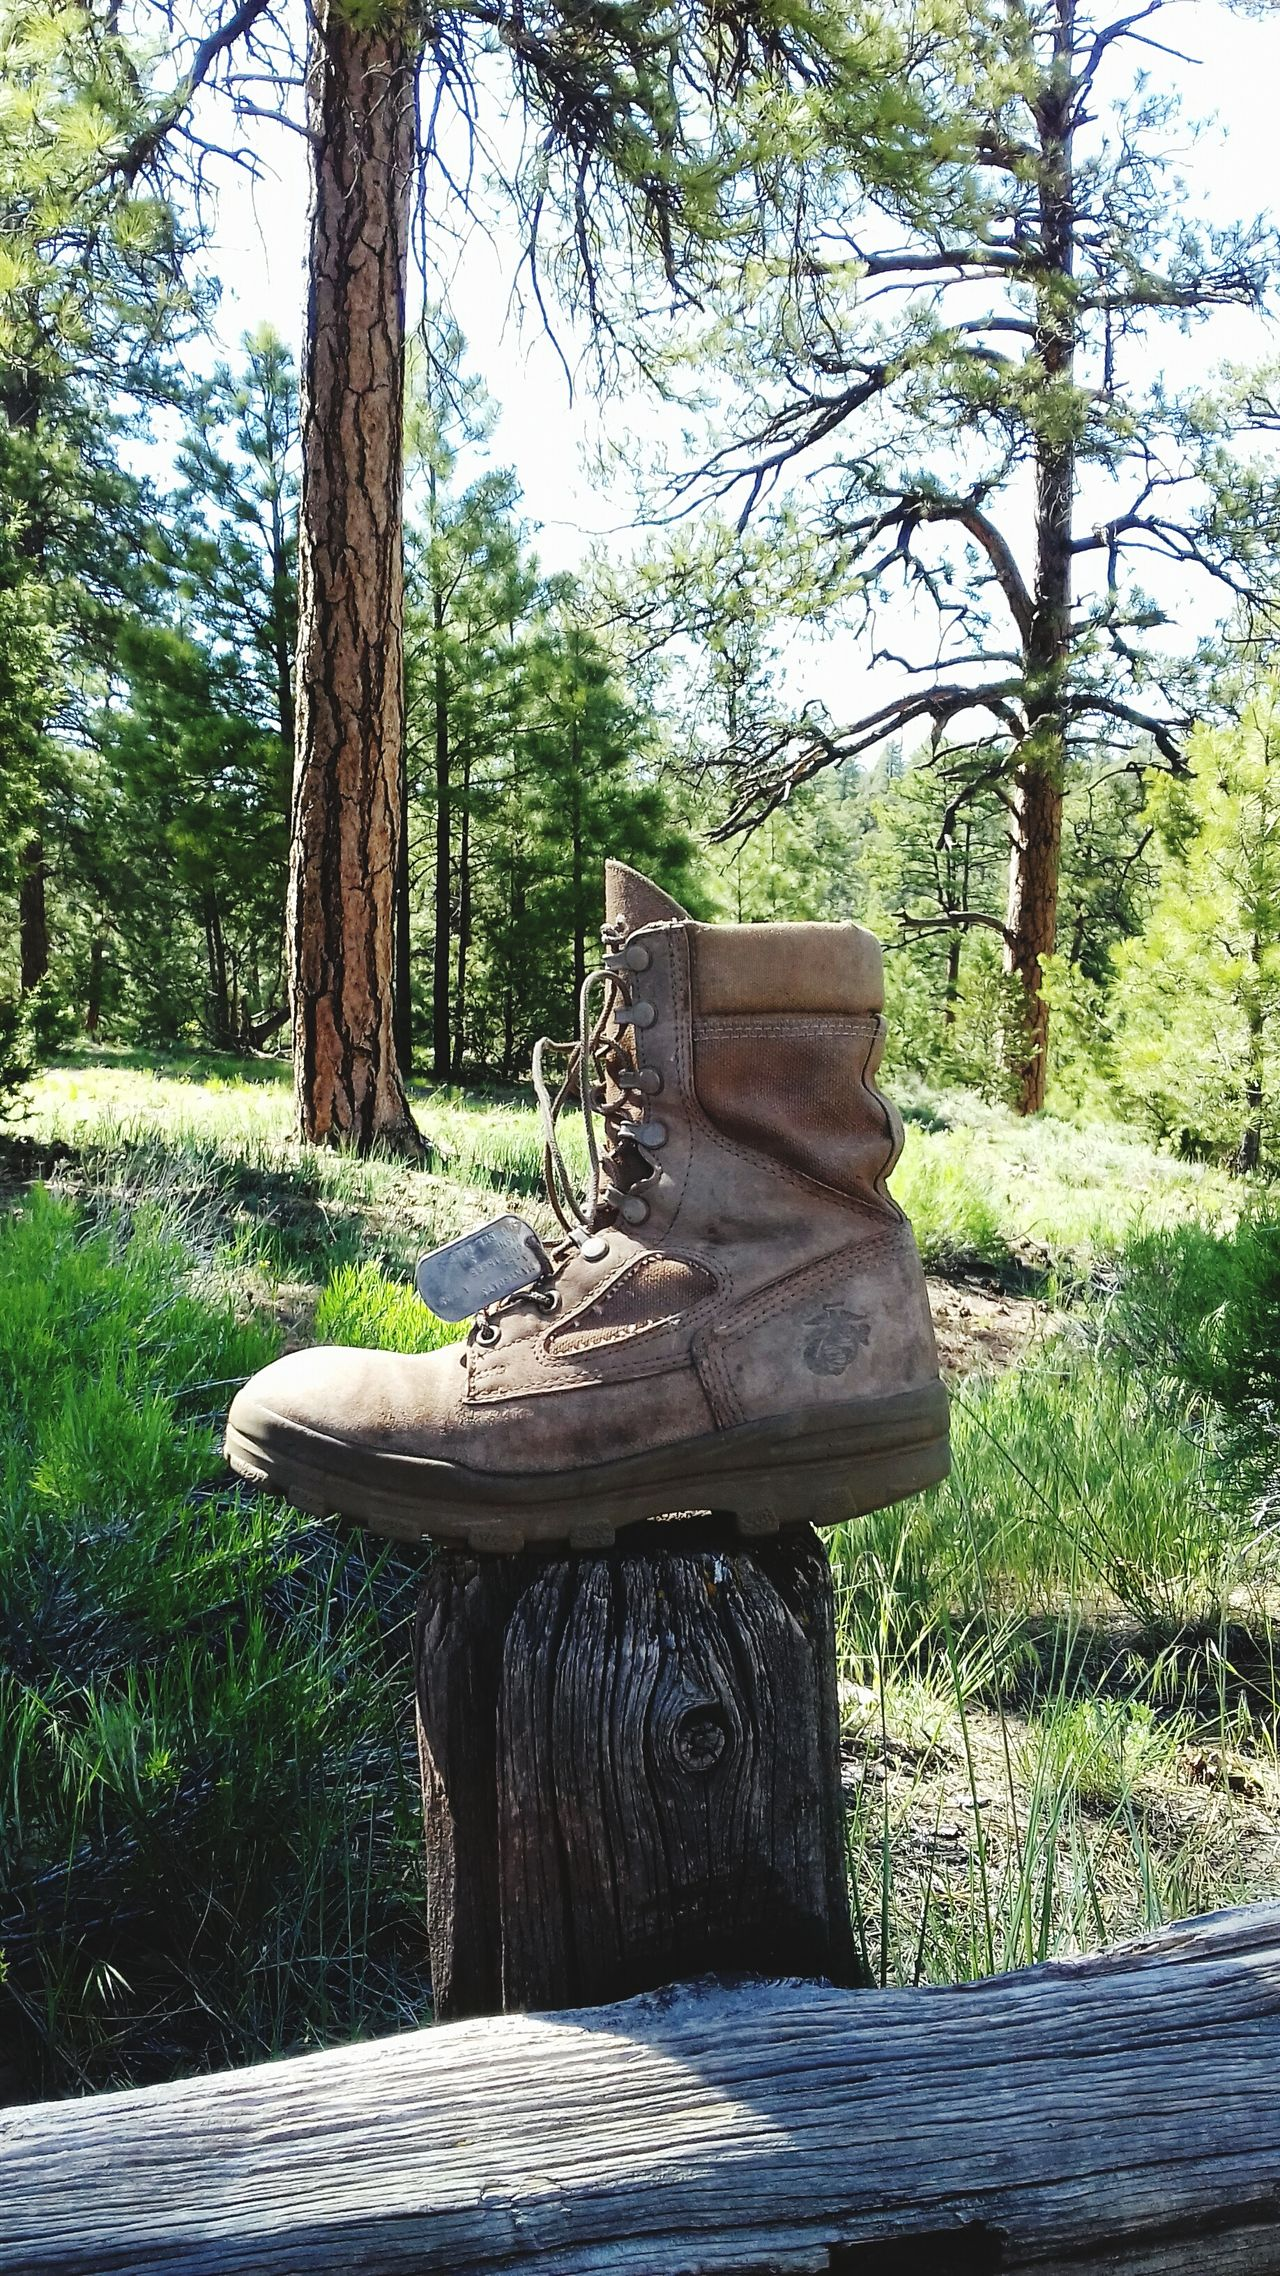 Memorial day 2017 Tree Day No People Nature Growth Outdoors Wood - Material Shadow Sunlight Grass Sky Marine Corps Dogtag Veteran Marine Boot